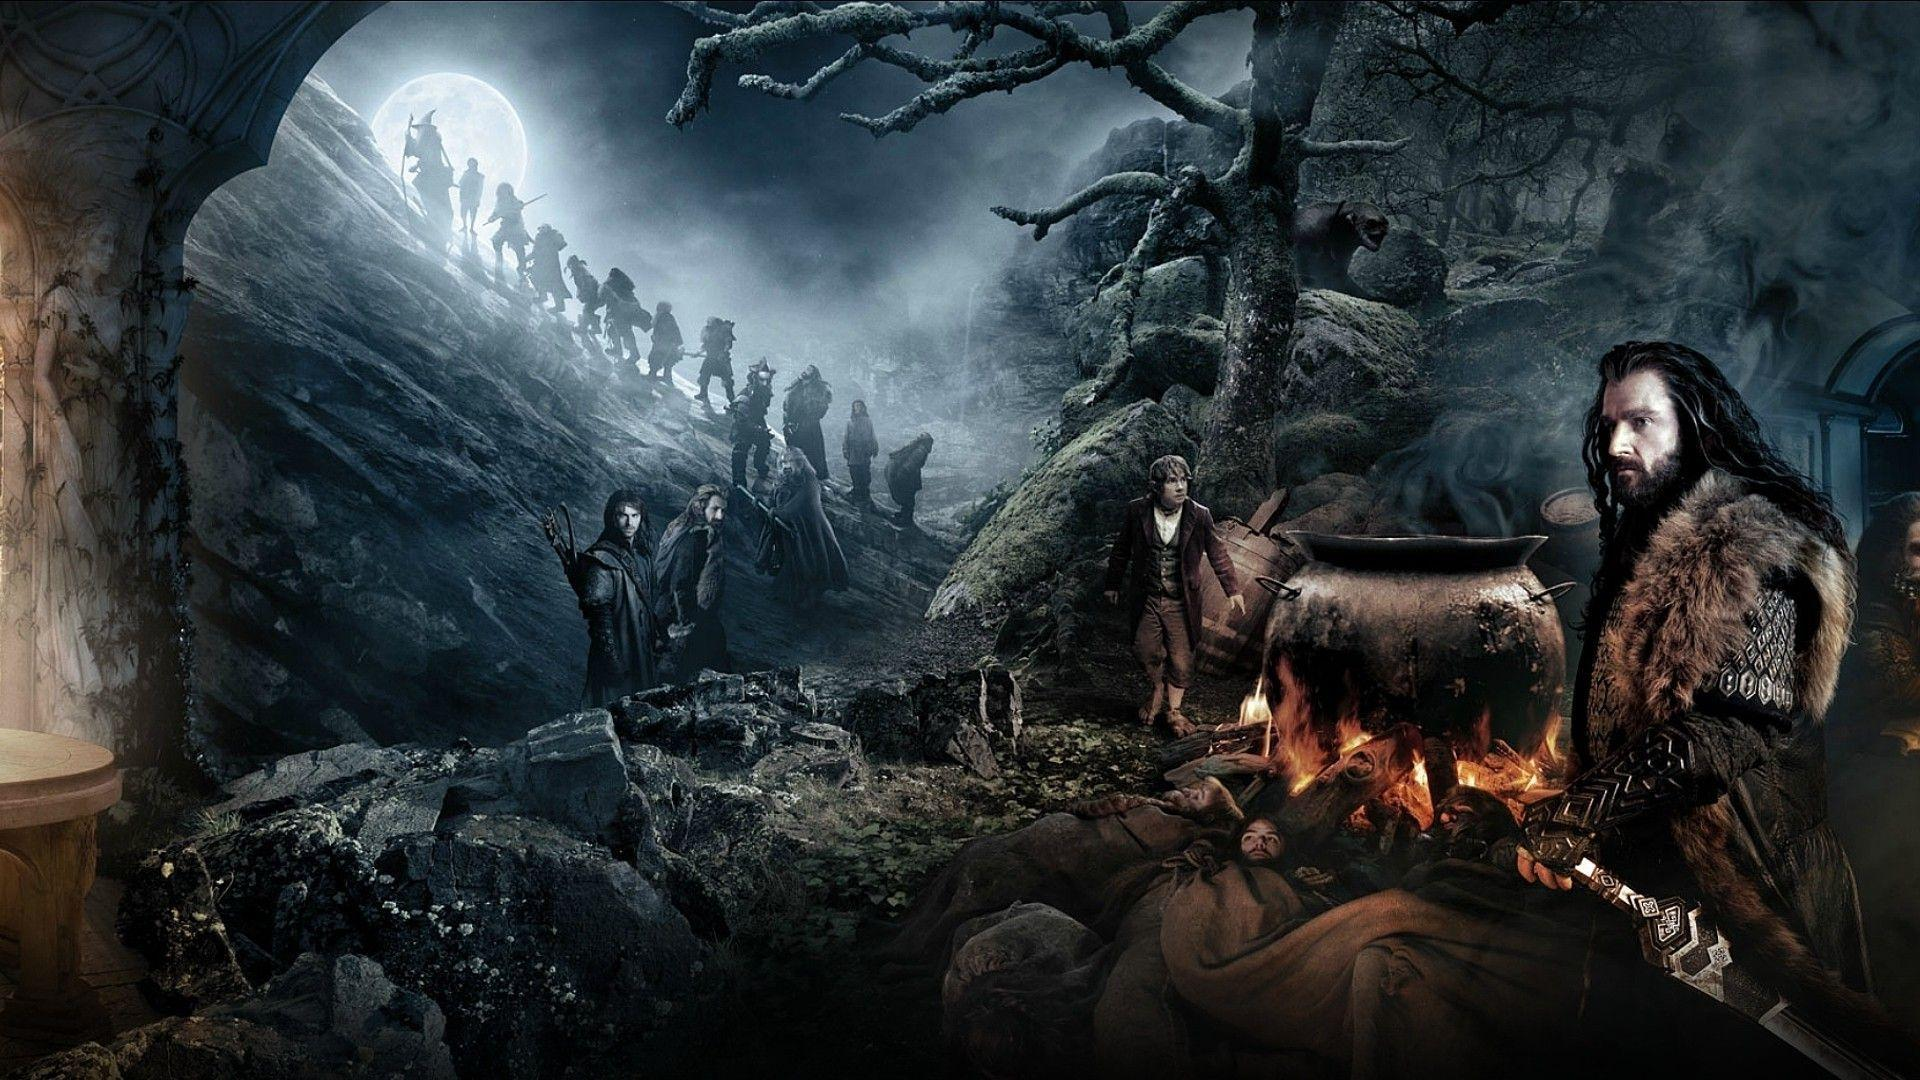 The Hobbit Wallpapers - Wallpaper Cave